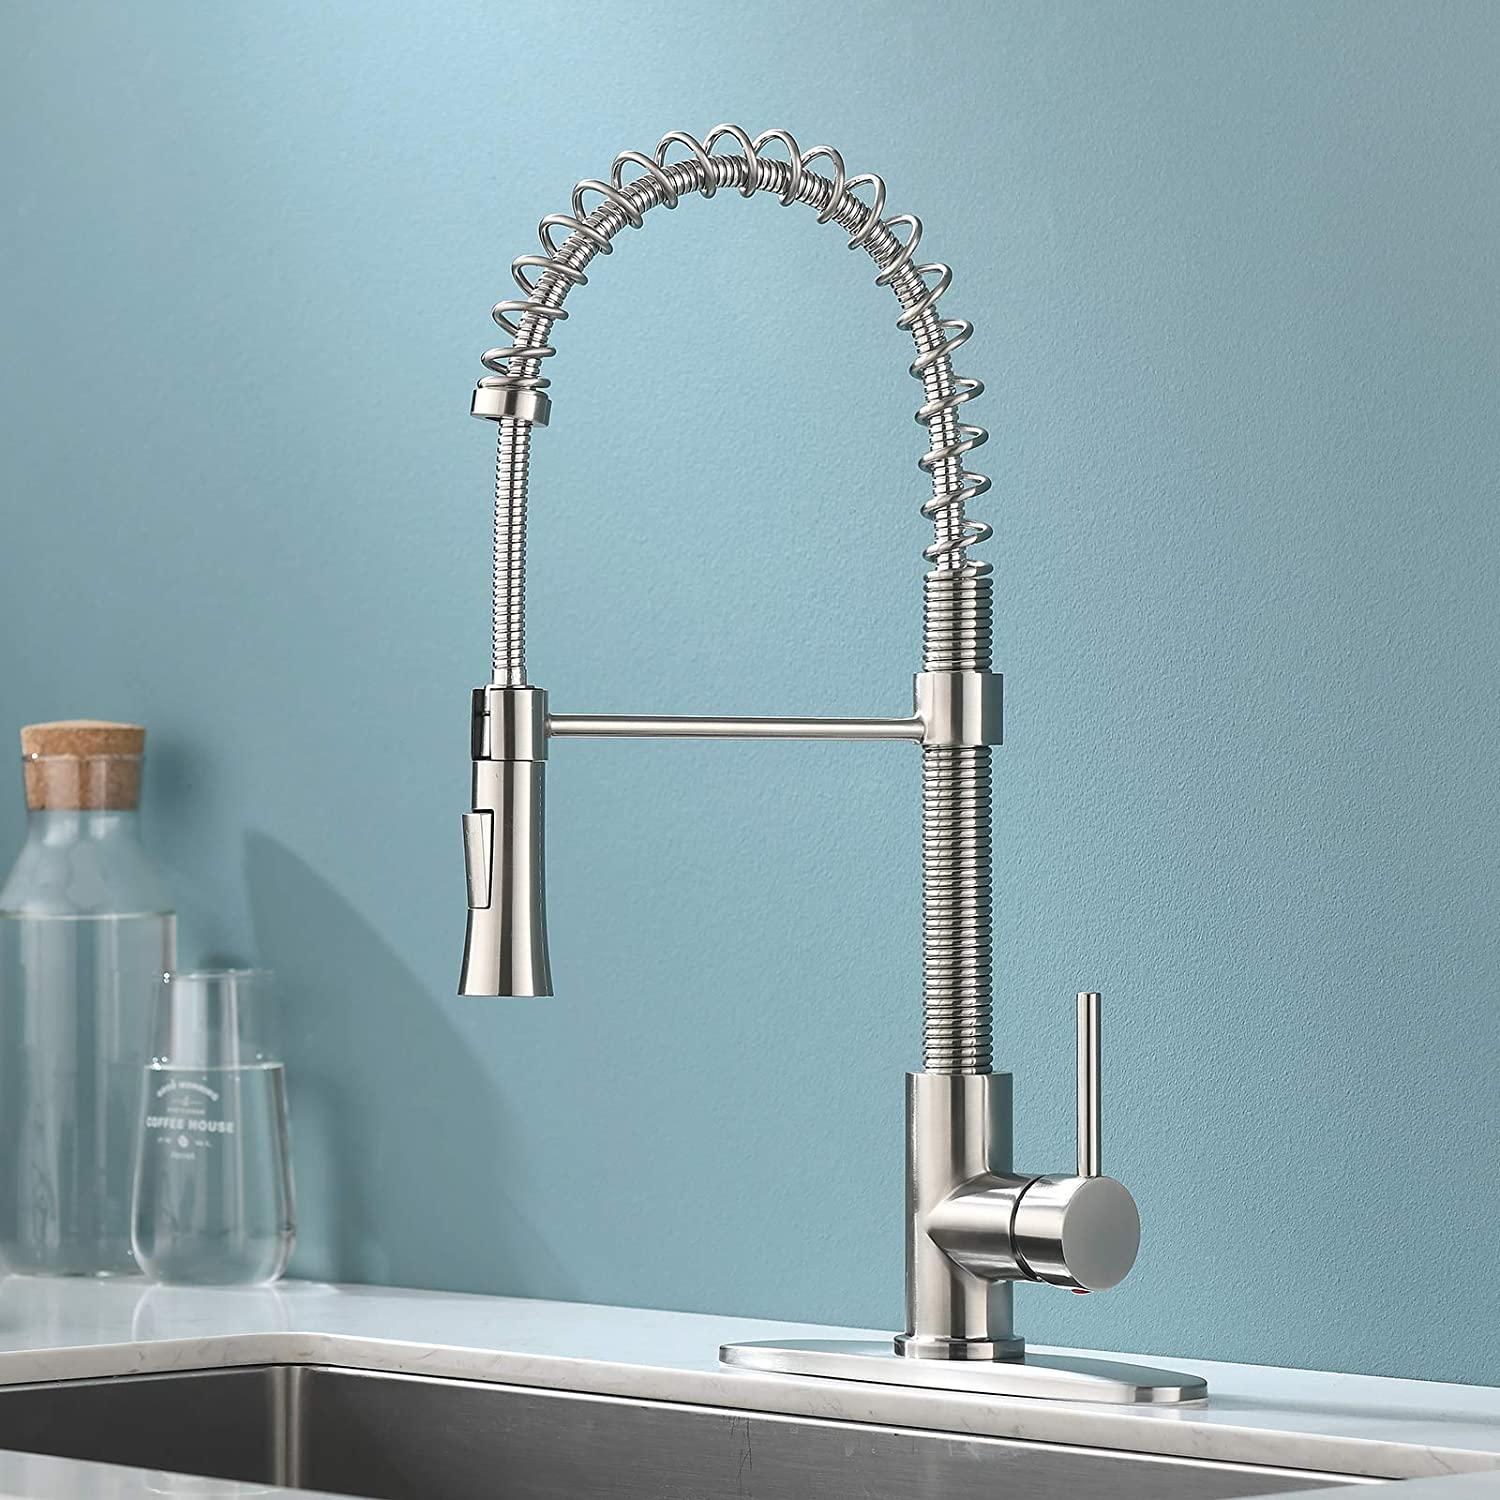 KINGO HOME Farmhouse Brushed Nickel Spring Kitchen Faucet with Pull Down Sprayer, Commercial Stainless Steel Single Lever Handle Kitchen Sink Faucet with Deck Plate